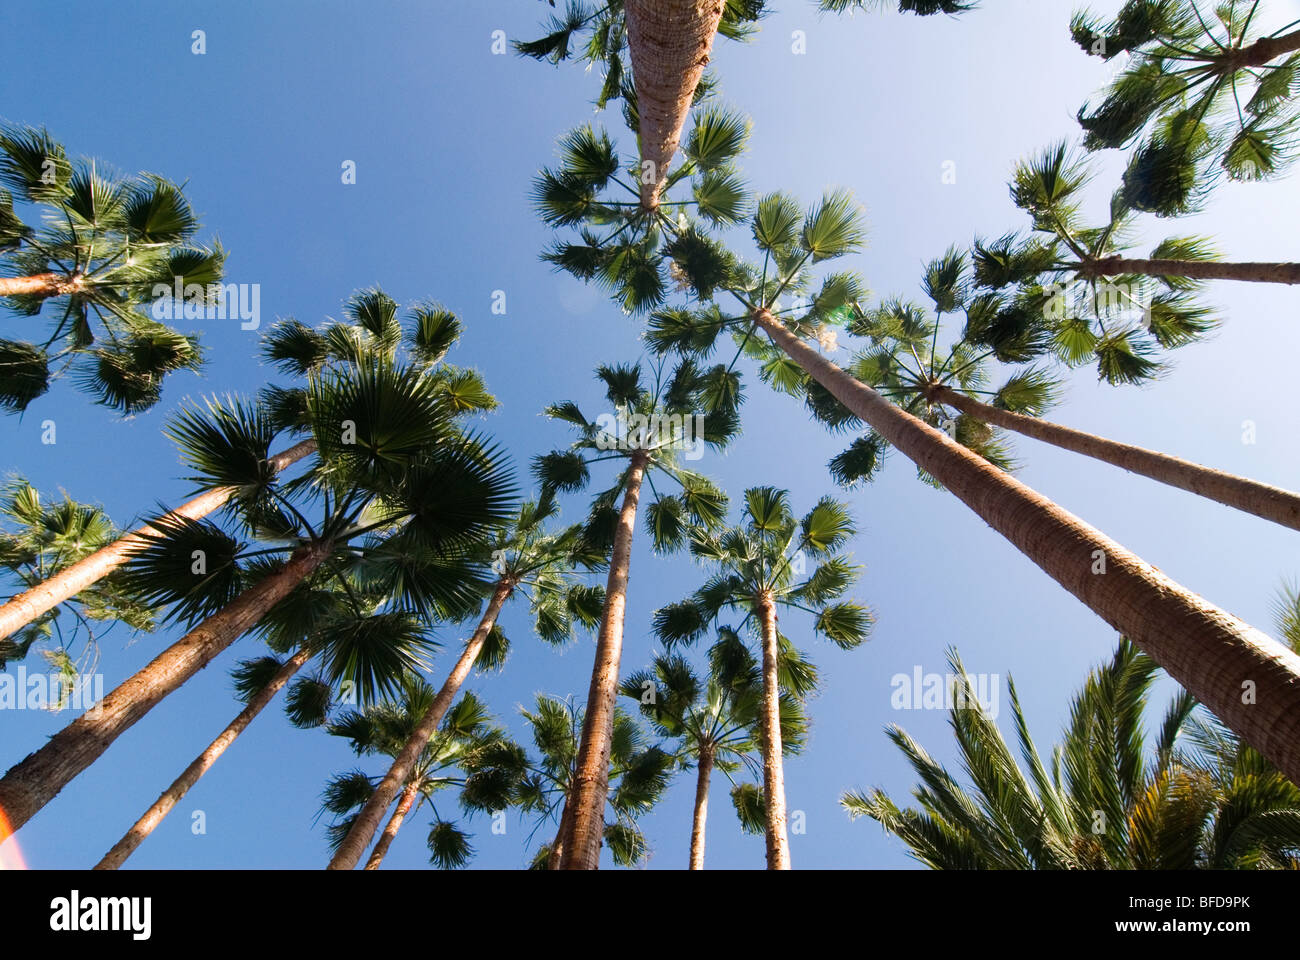 Worms-eye view of palm-trees in La Palma, Canary Islands, Spain, Europe. - Stock Image